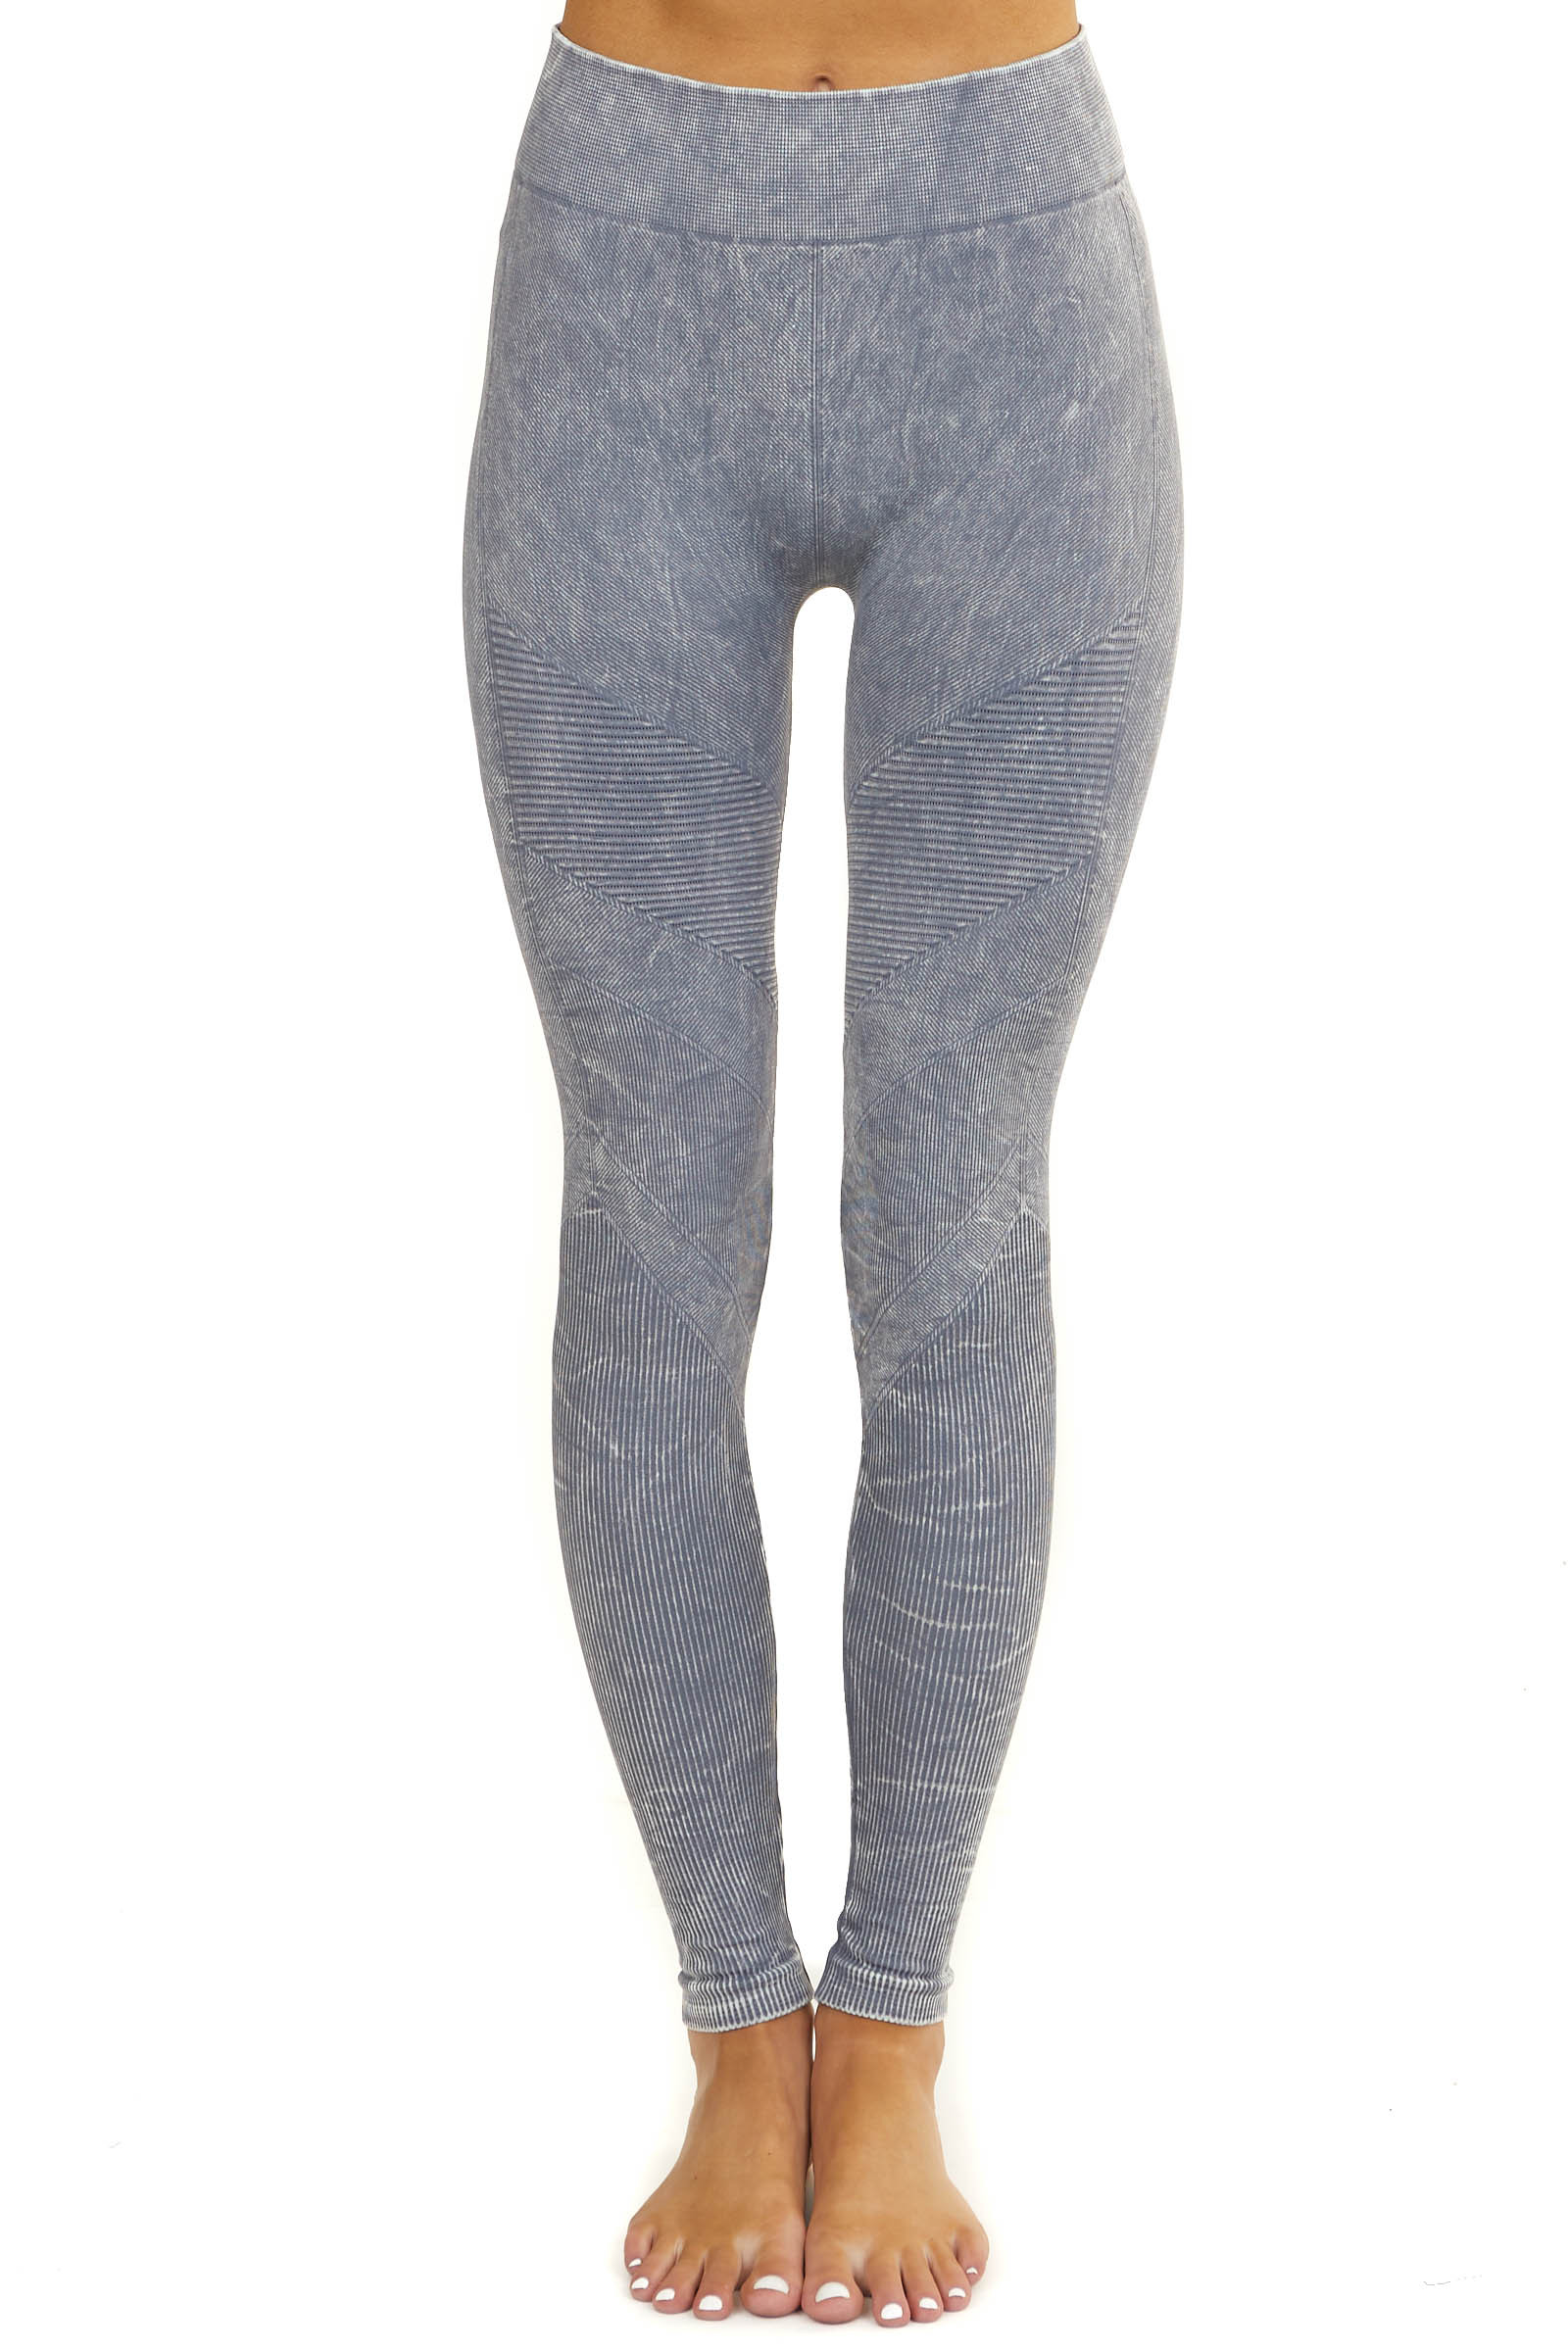 Faded Slate Grey High Waisted Stretchy Moto Leggings